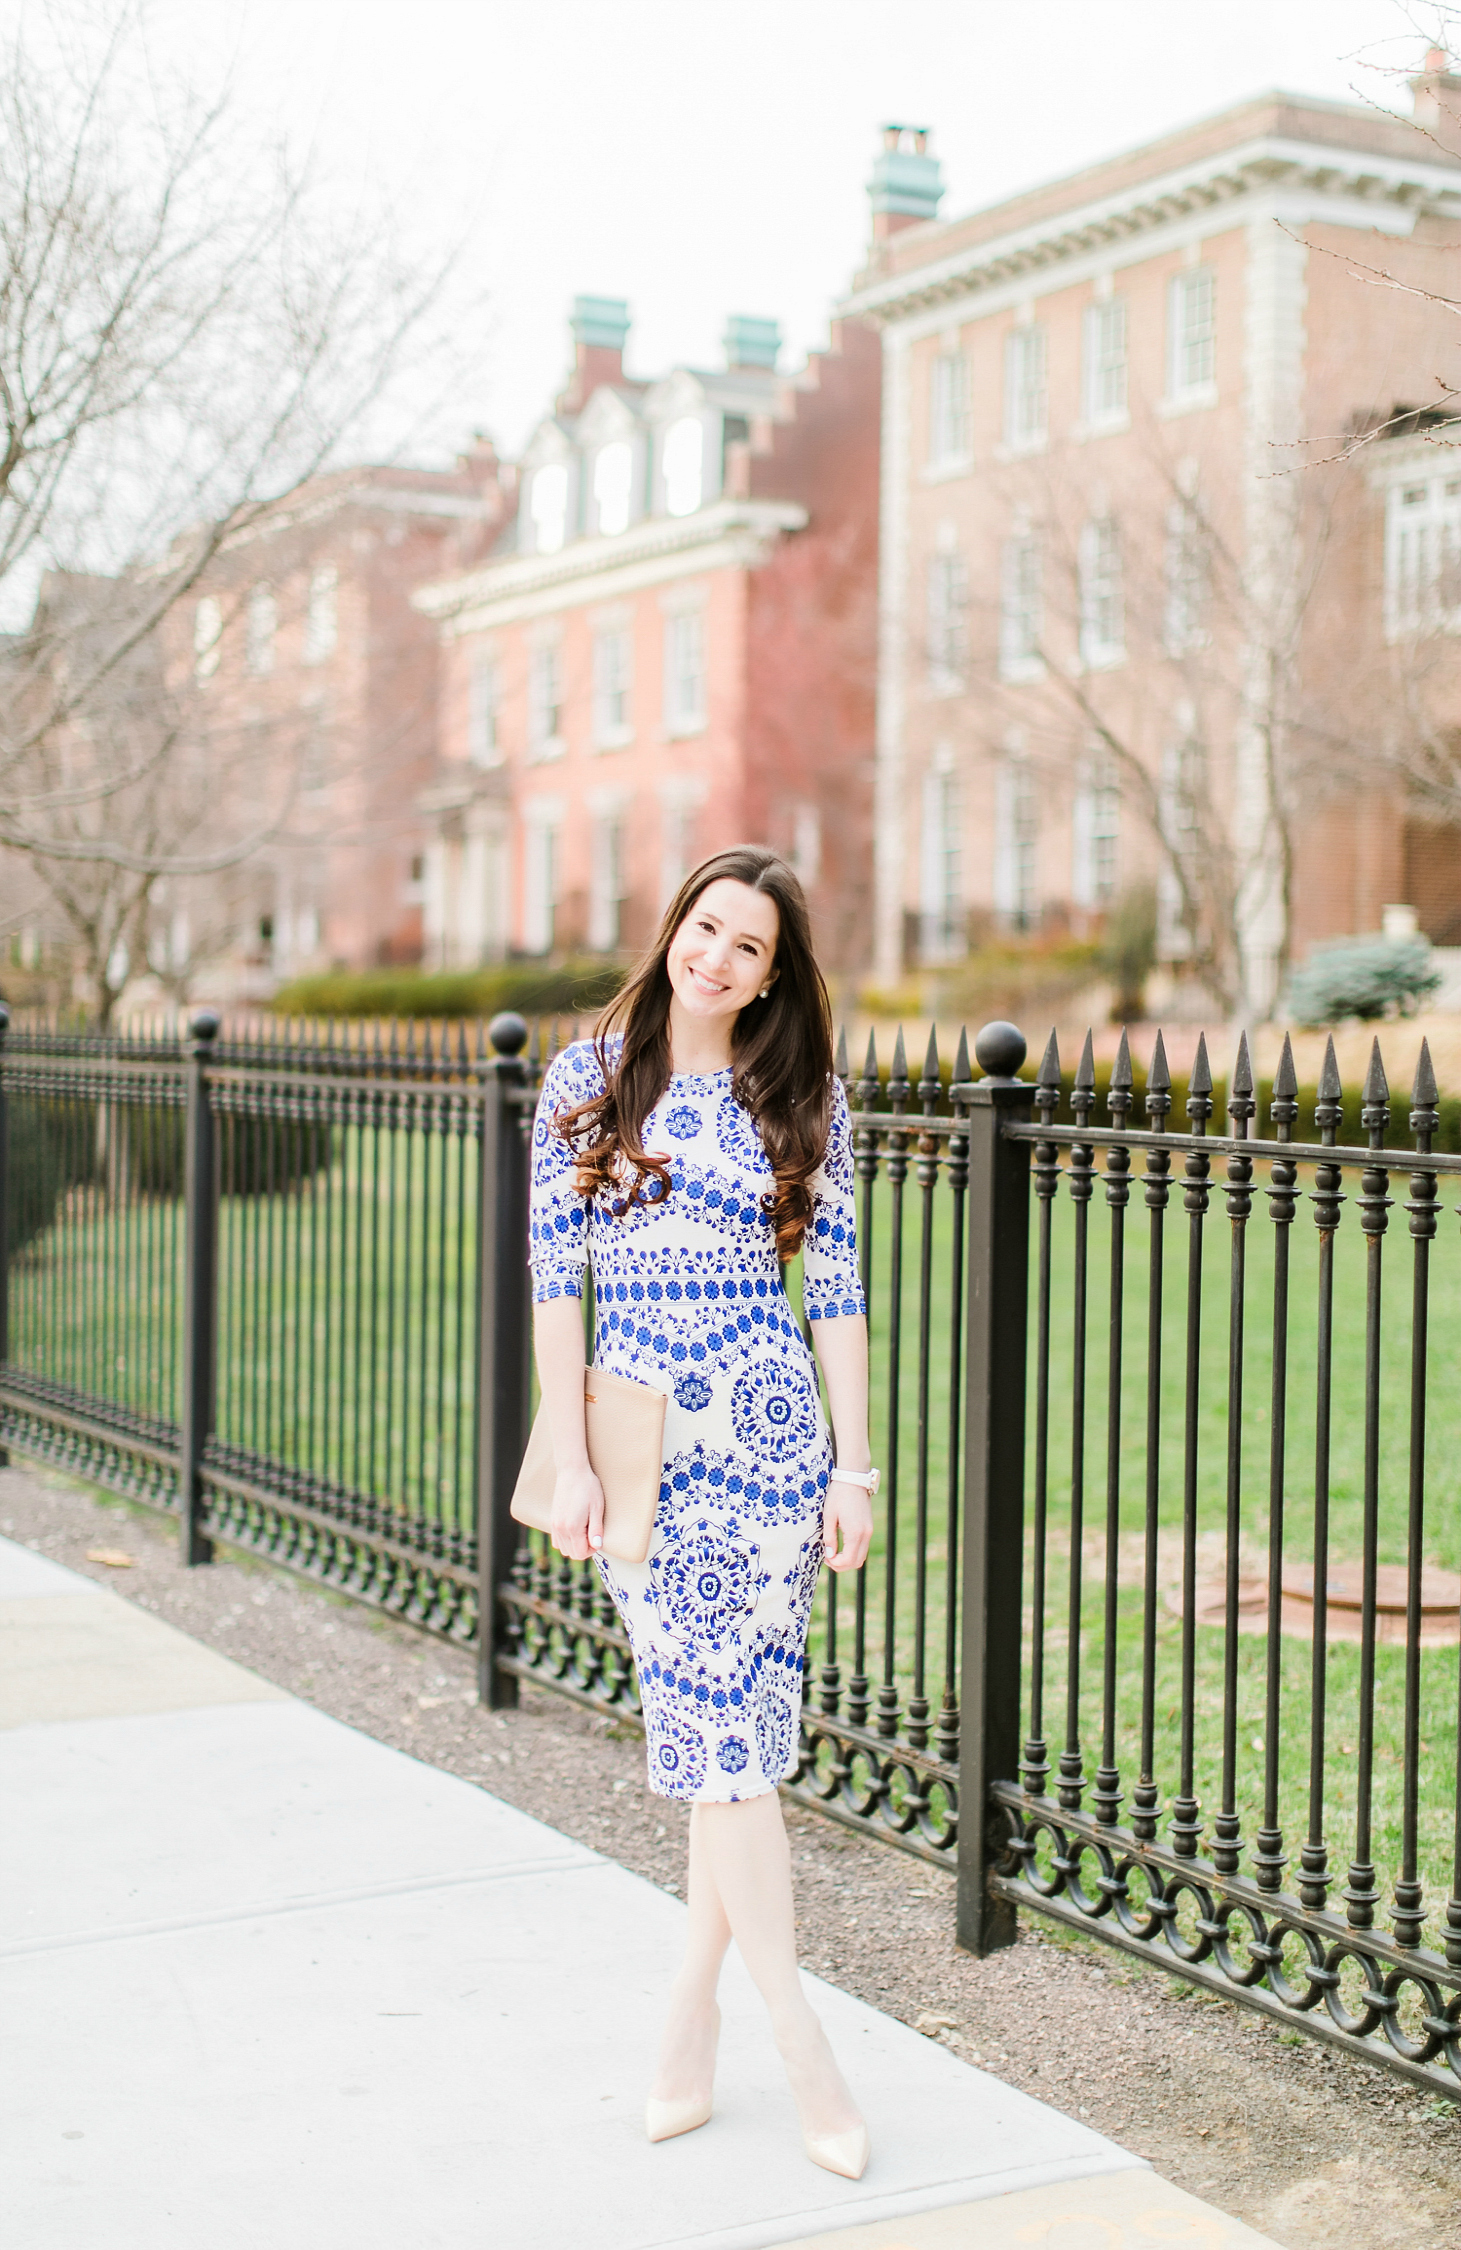 Dress Like Kate Middleton: An Affordable Taj Mahal Dress Replica for Your Spring Wardrobe by southern fashion blogger Stephanie Ziajka from Diary of a Debutante, Affordable Kate Middleton Taj Mahal Dress Replica, Naeem Khan Taj Mahal dress, Shein porcelain print pencil dress with M. Gemi The Cammeo tan patent leather pumps and a stone GiGi New York Uber clutch